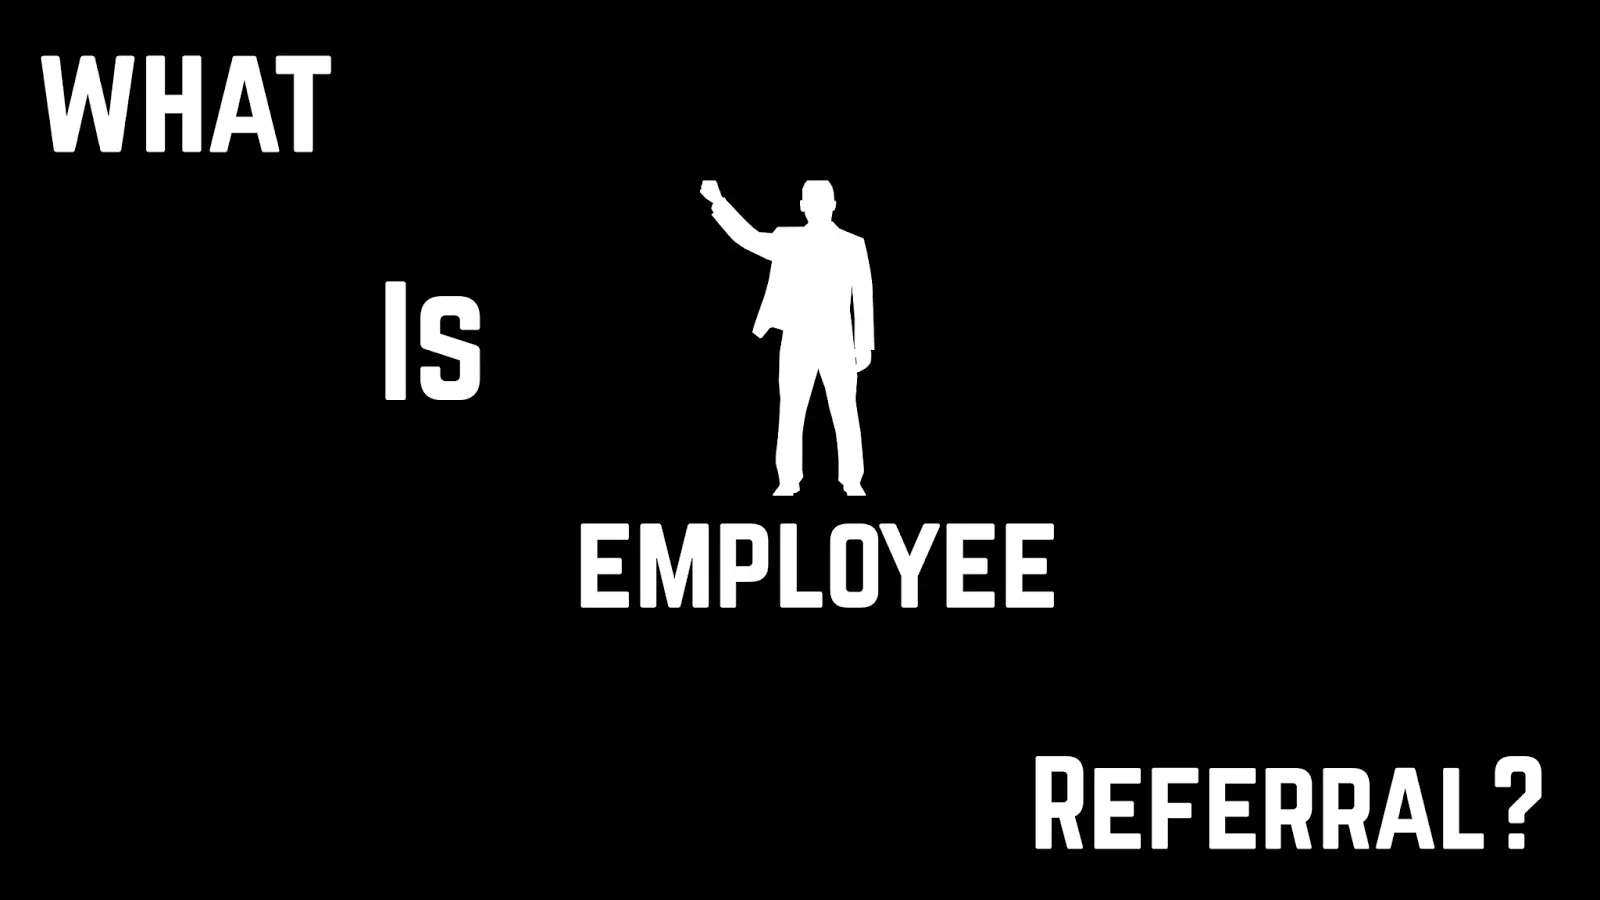 What is employee referral